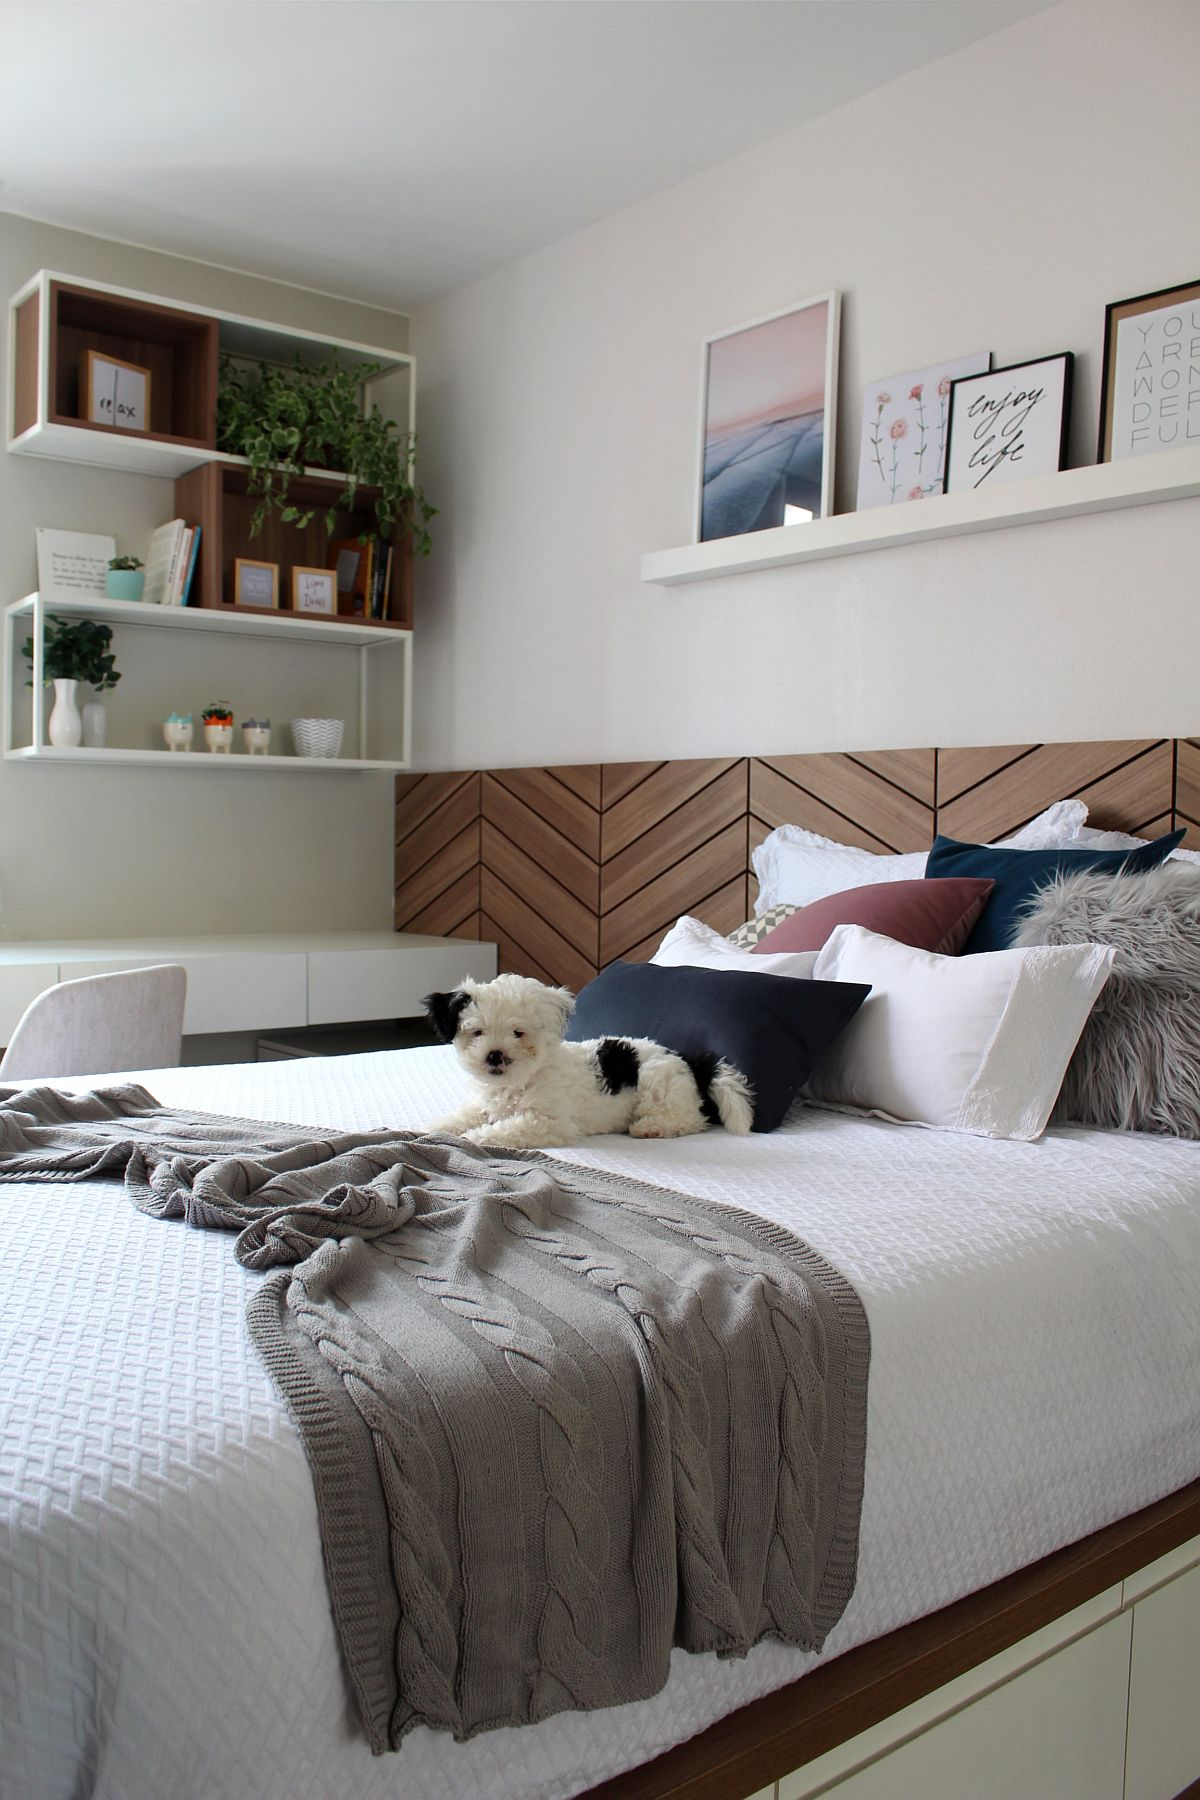 Bela's bedroom in Sudoeste, Brasília with a refined wood and white color scheme